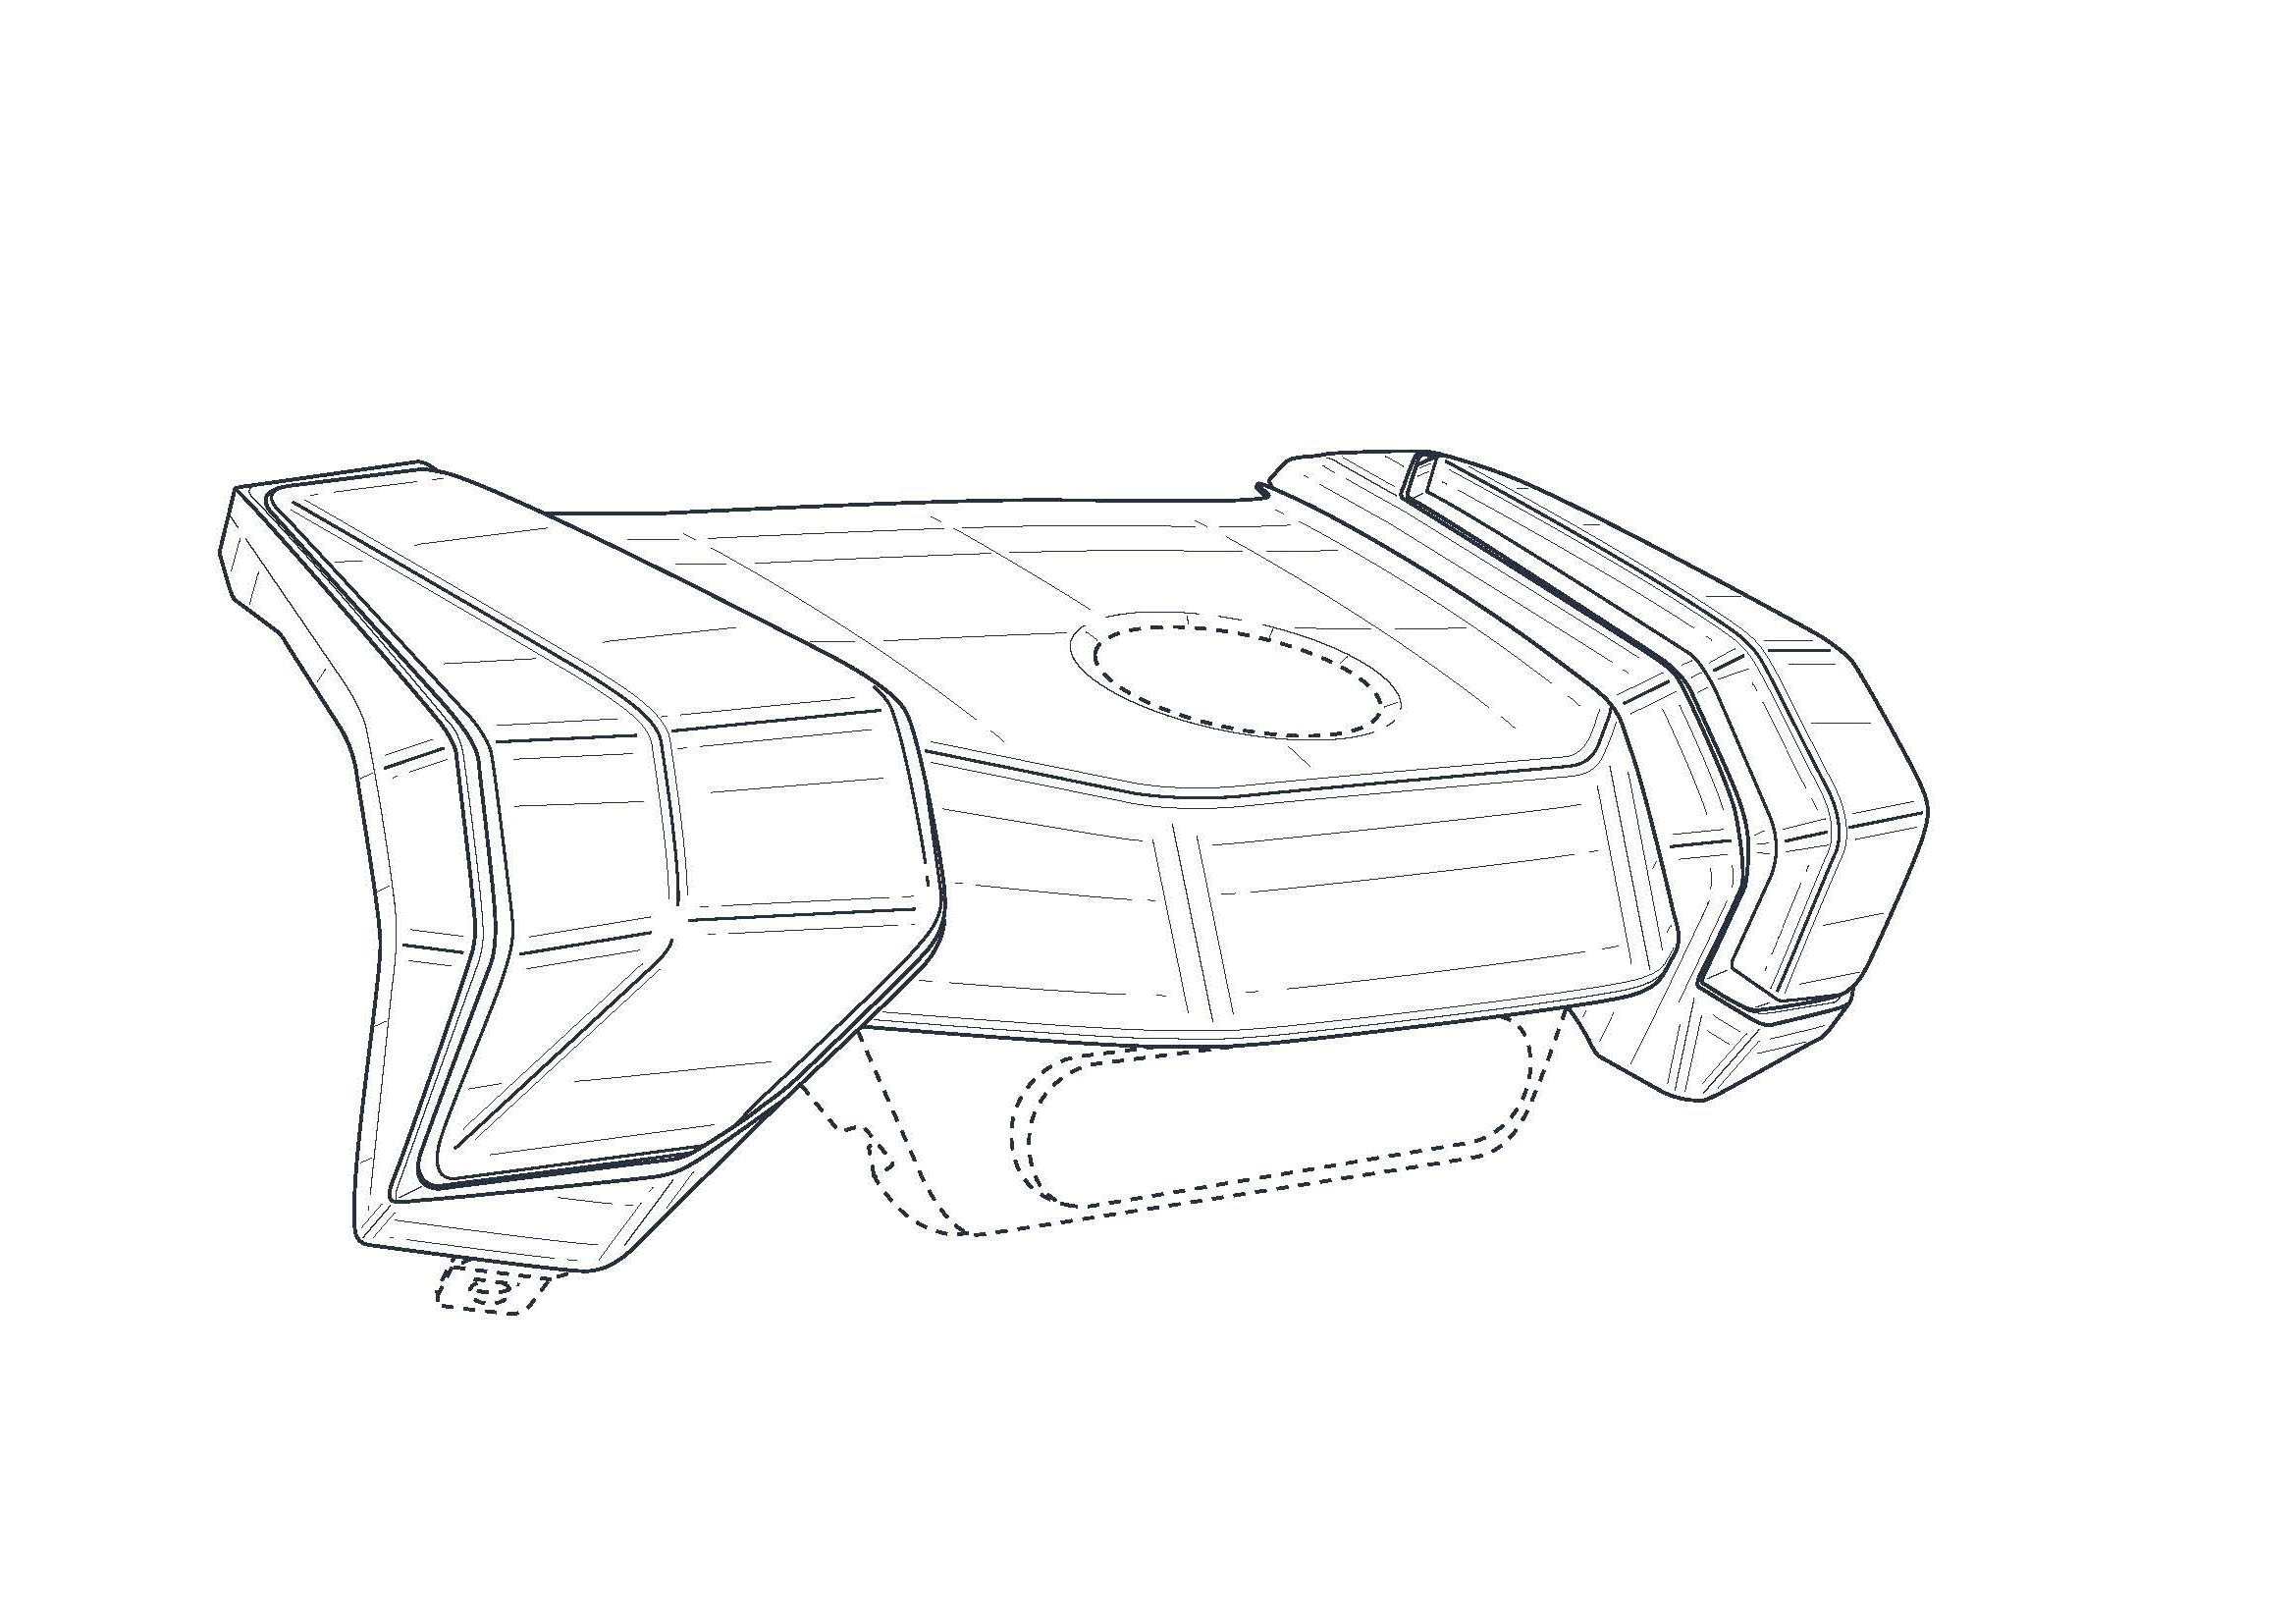 New Can Am Spyder Design Revealed In Patent Filings